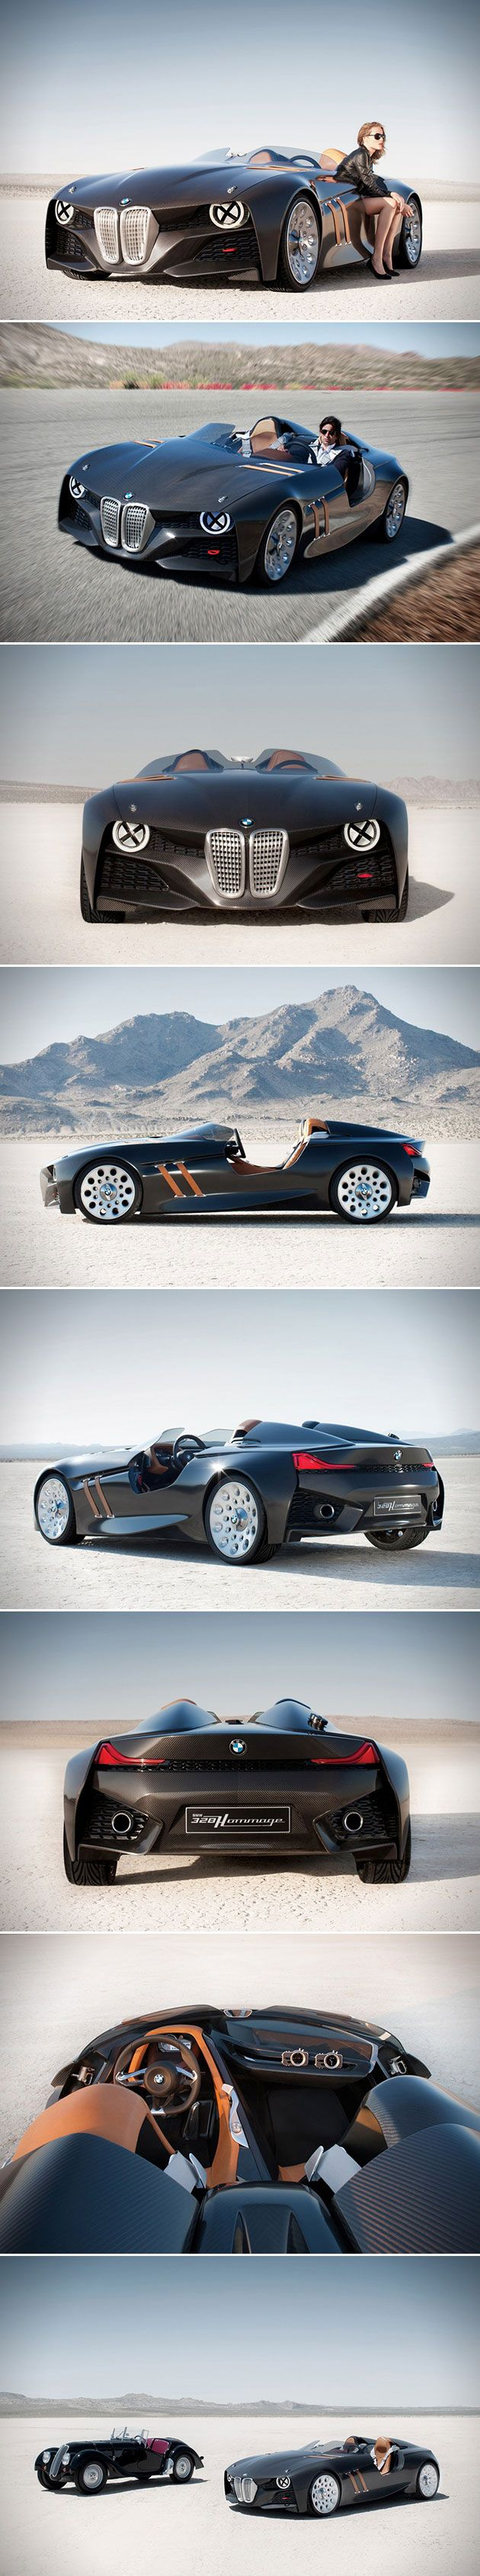 Repin this #BMW 328 Hommage then follow my BMW board for more pins